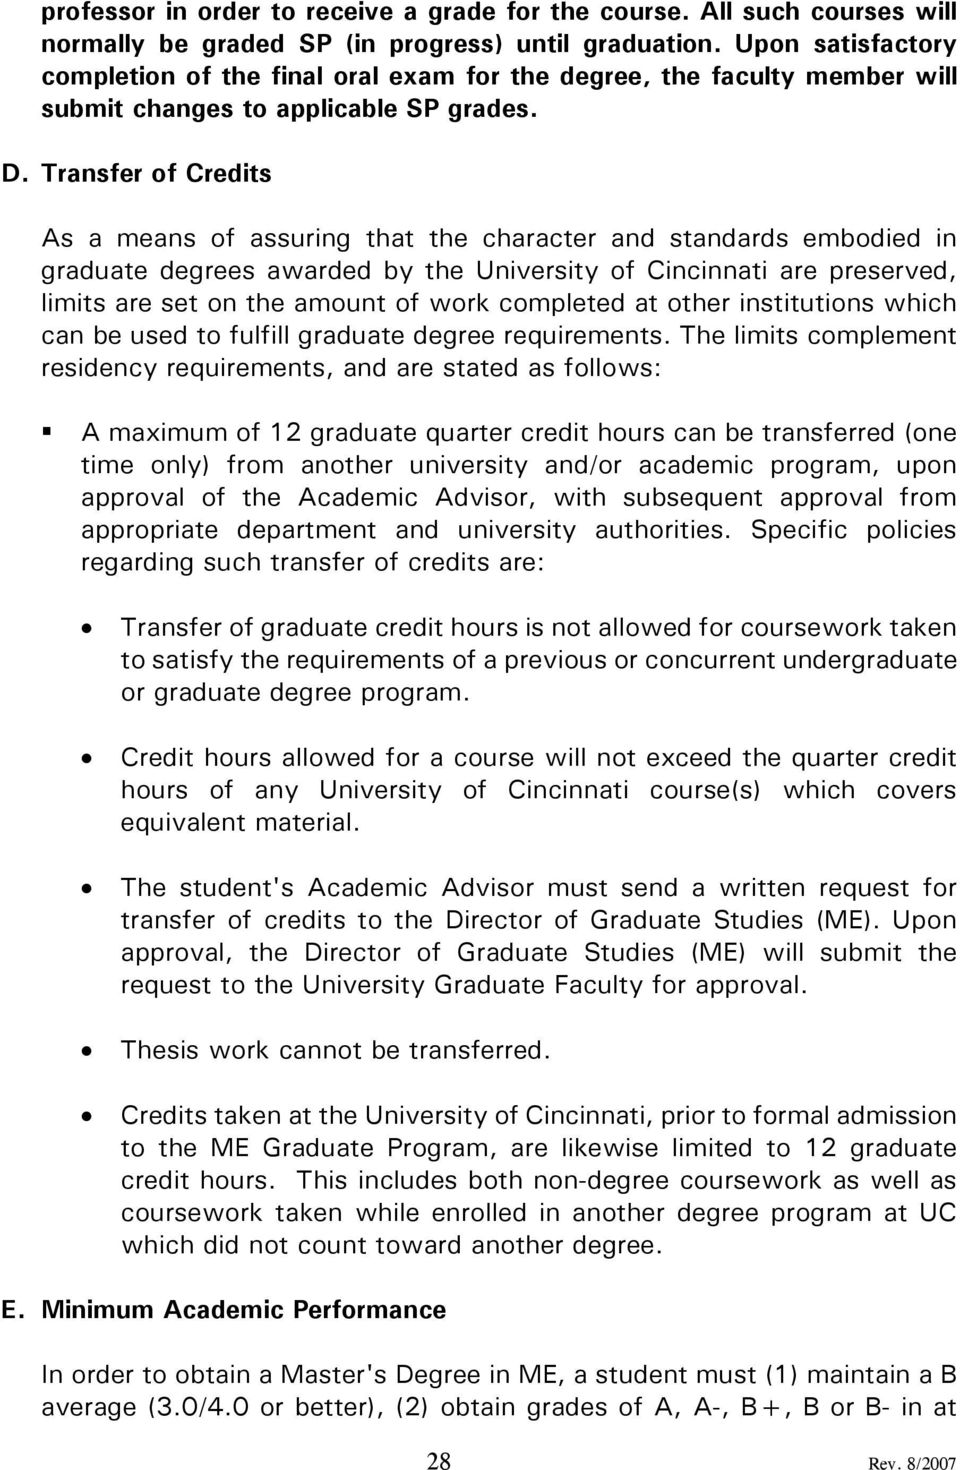 Transfer of Credits As a means of assuring that the character and standards embodied in graduate degrees awarded by the University of Cincinnati are preserved, limits are set on the amount of work